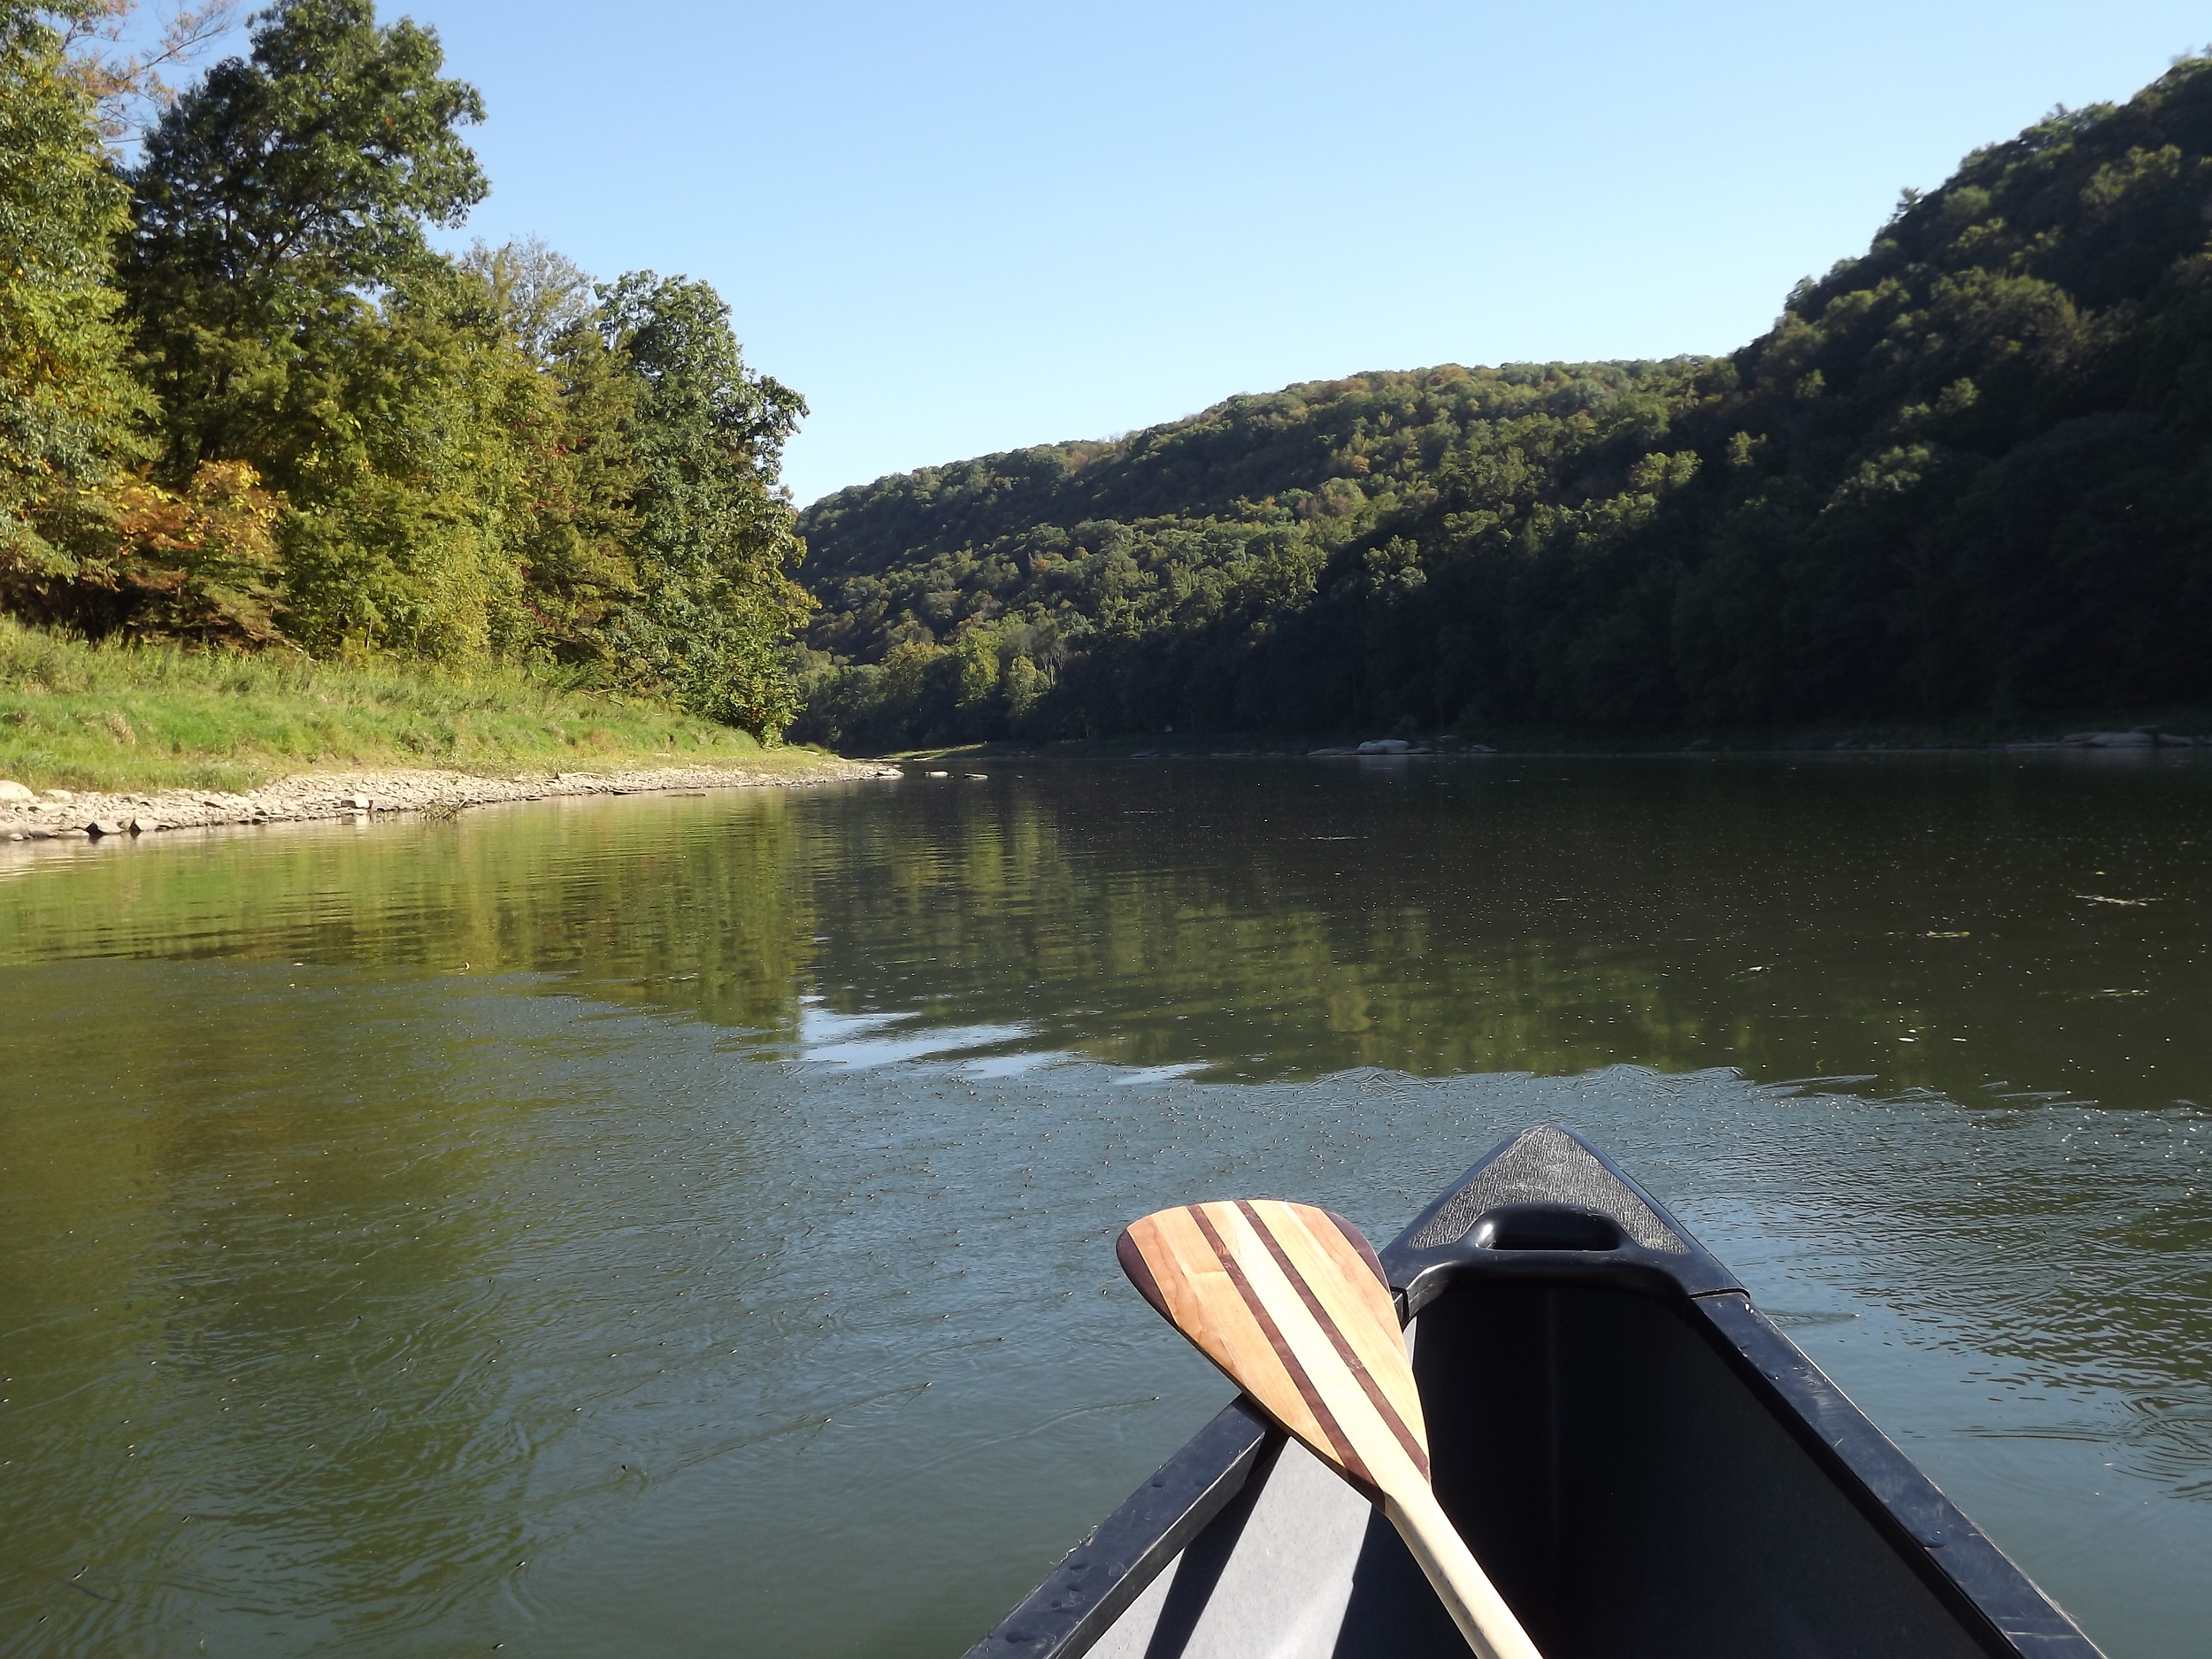 Allegheny River - Last bend before Take Out in Emlenton